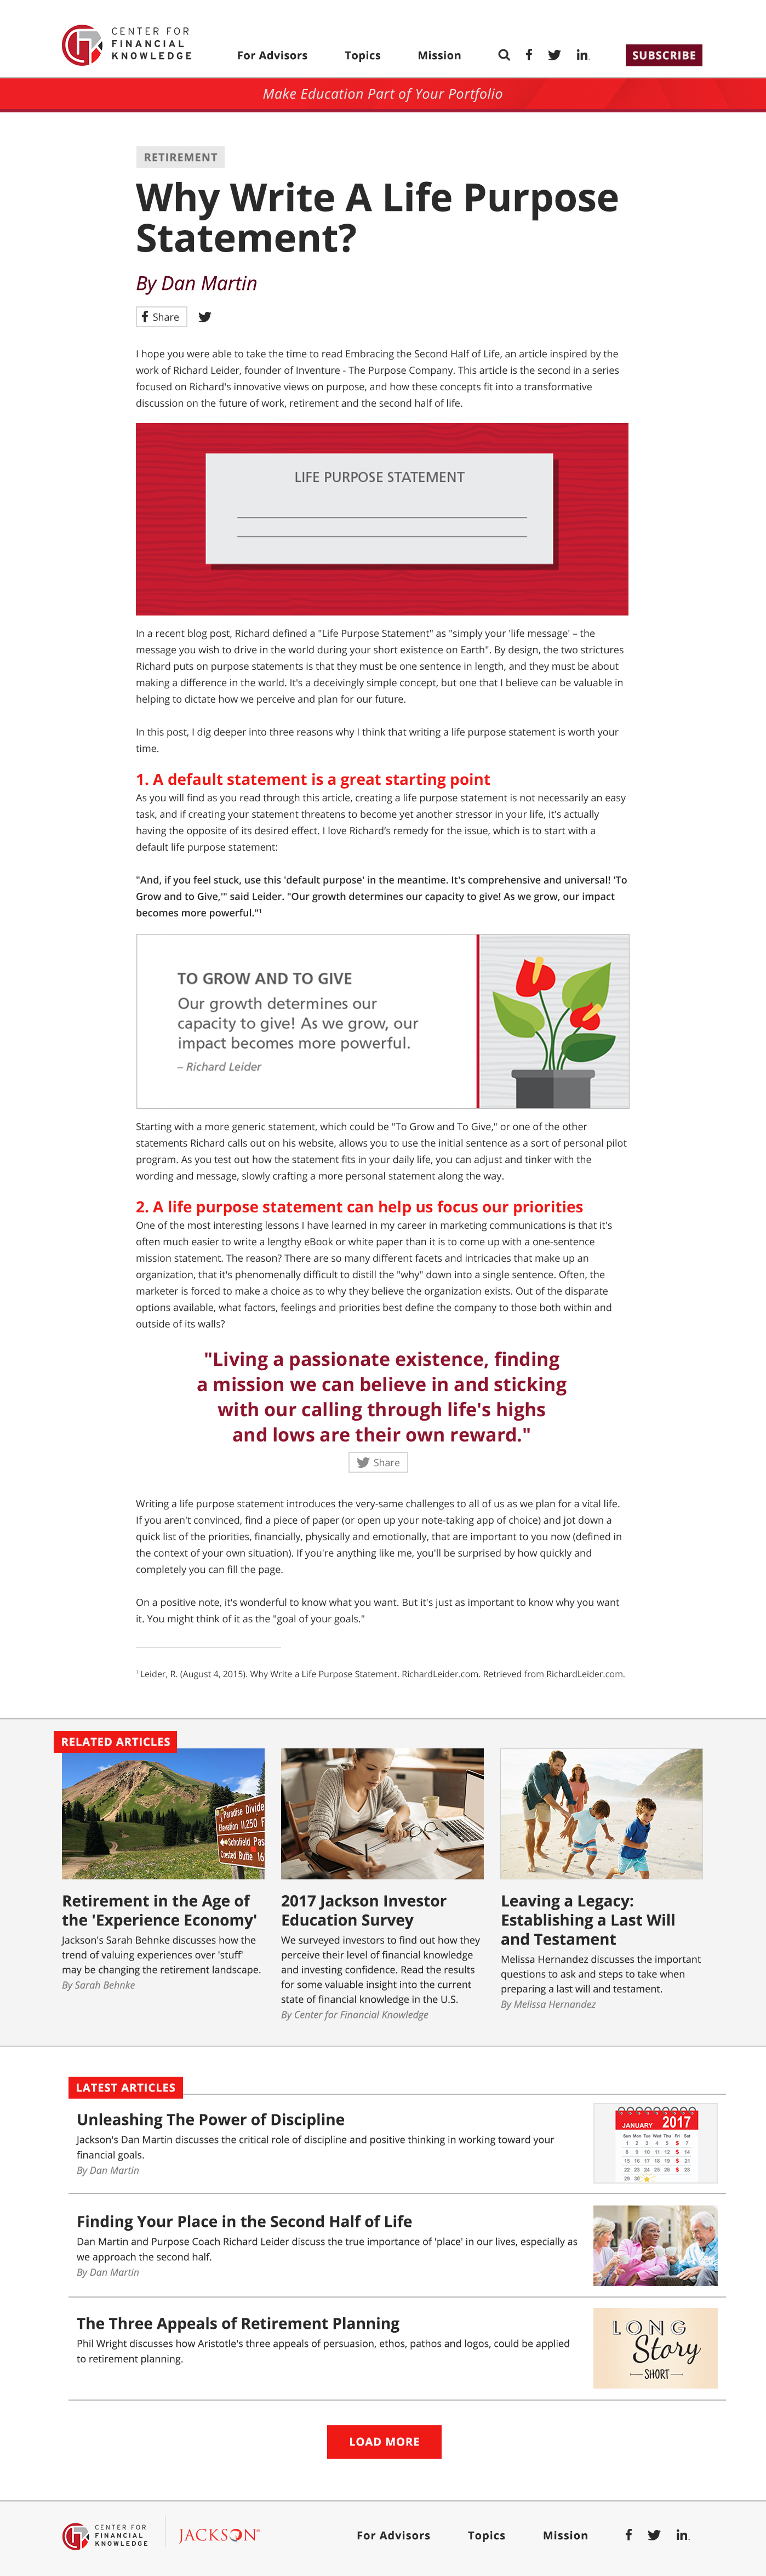 Article Layout (expanded)